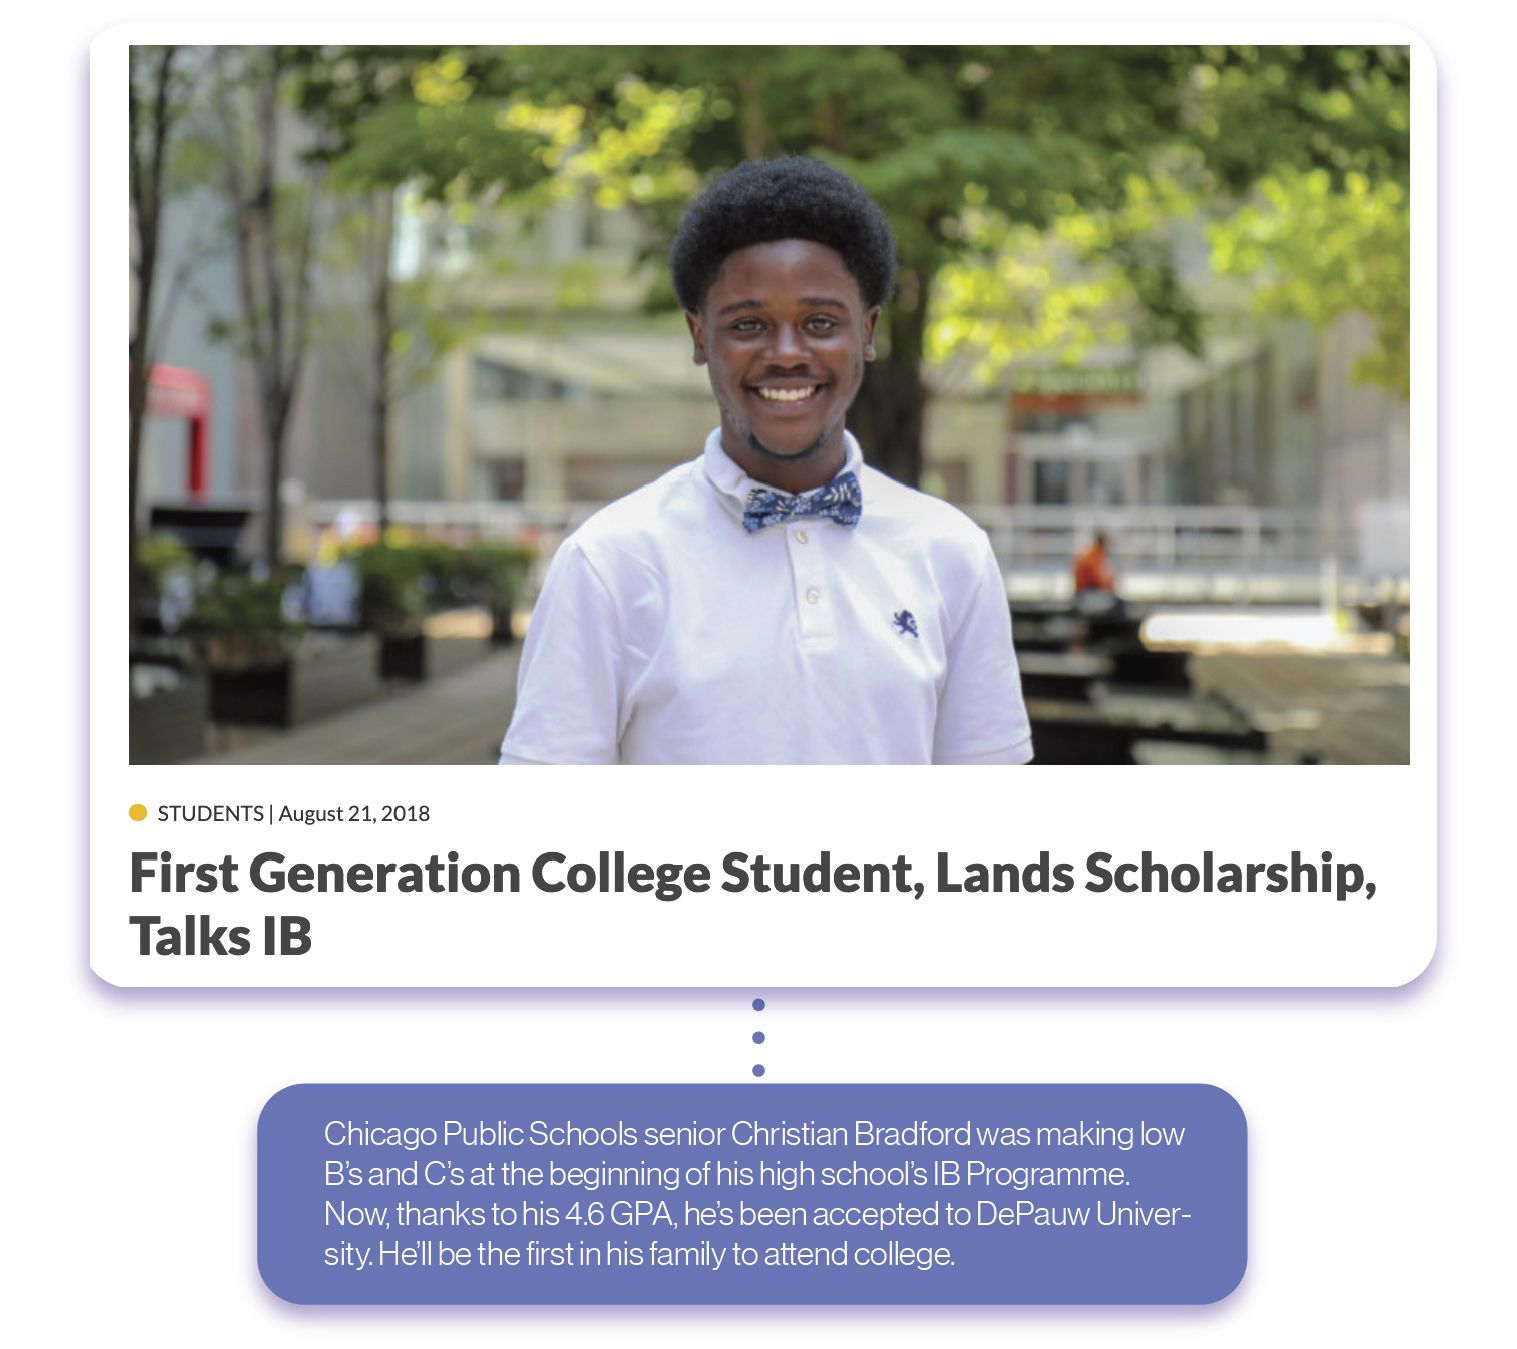 The article features a student who made mediocre grades at the beginning of high school but then overcame obstacles to attend an elite college.